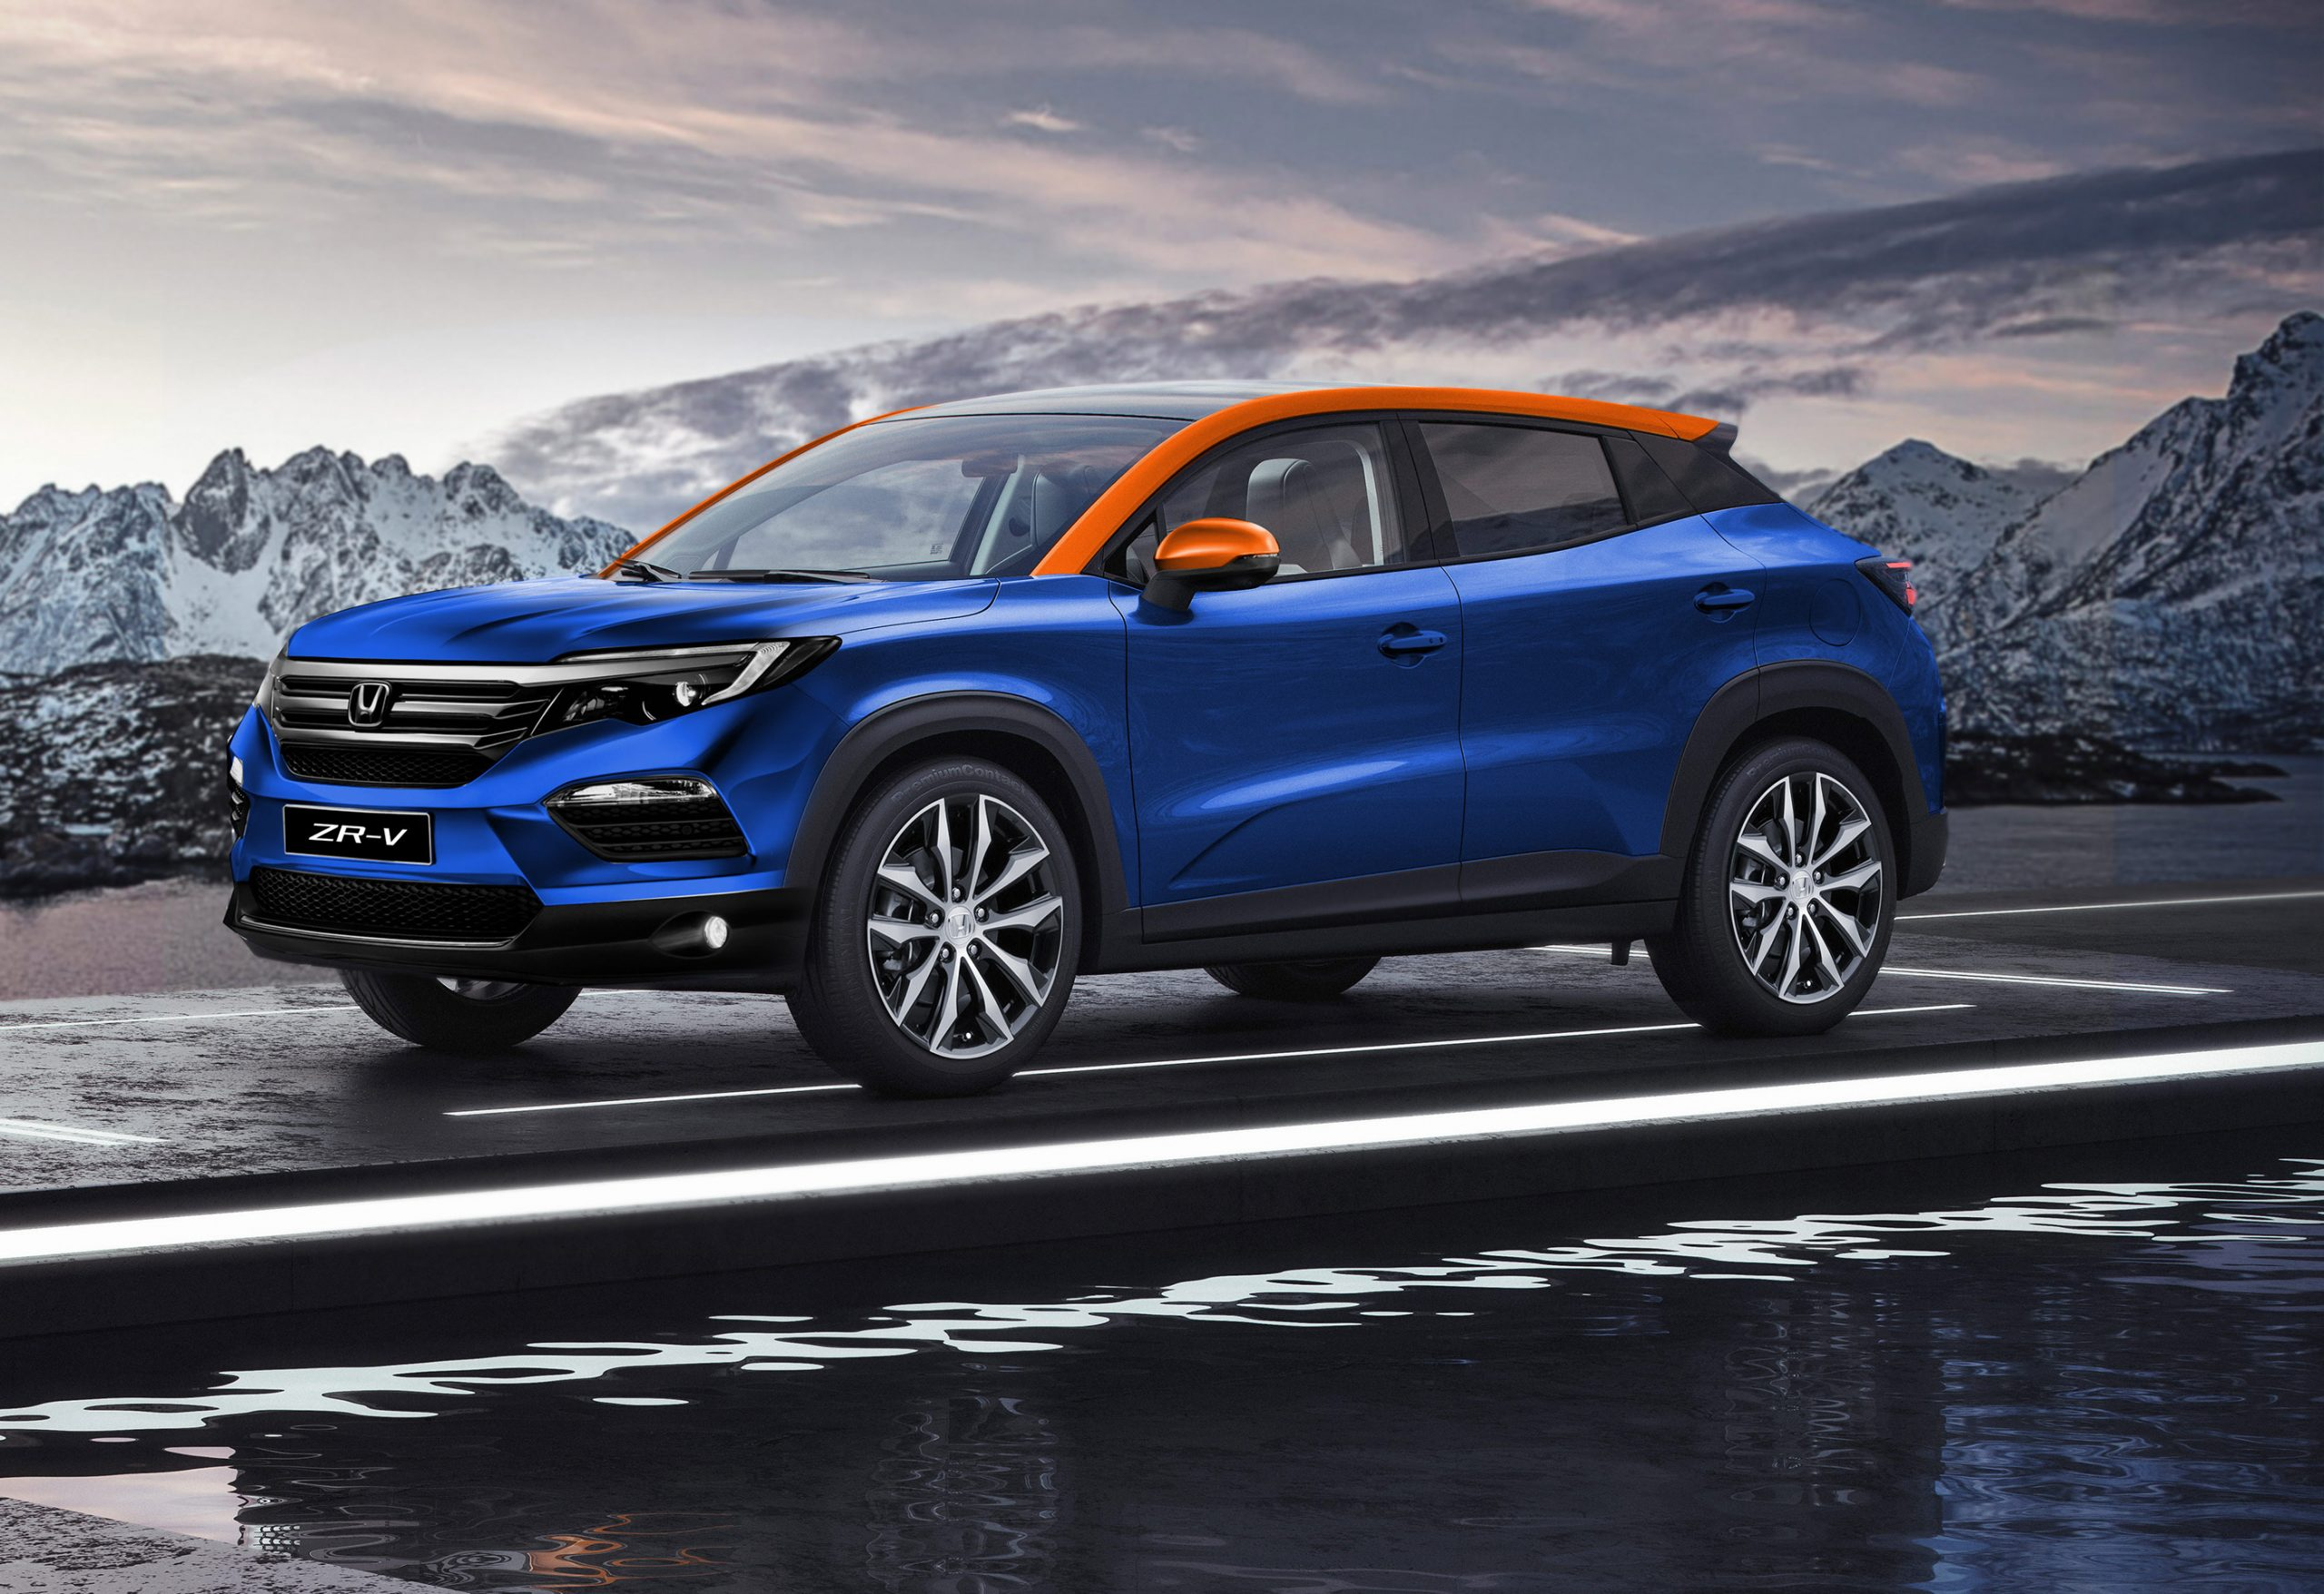 Honda Zr V Looks Like The Cr V Successor Thatll Take You By Surprise 143593 1 Scaled